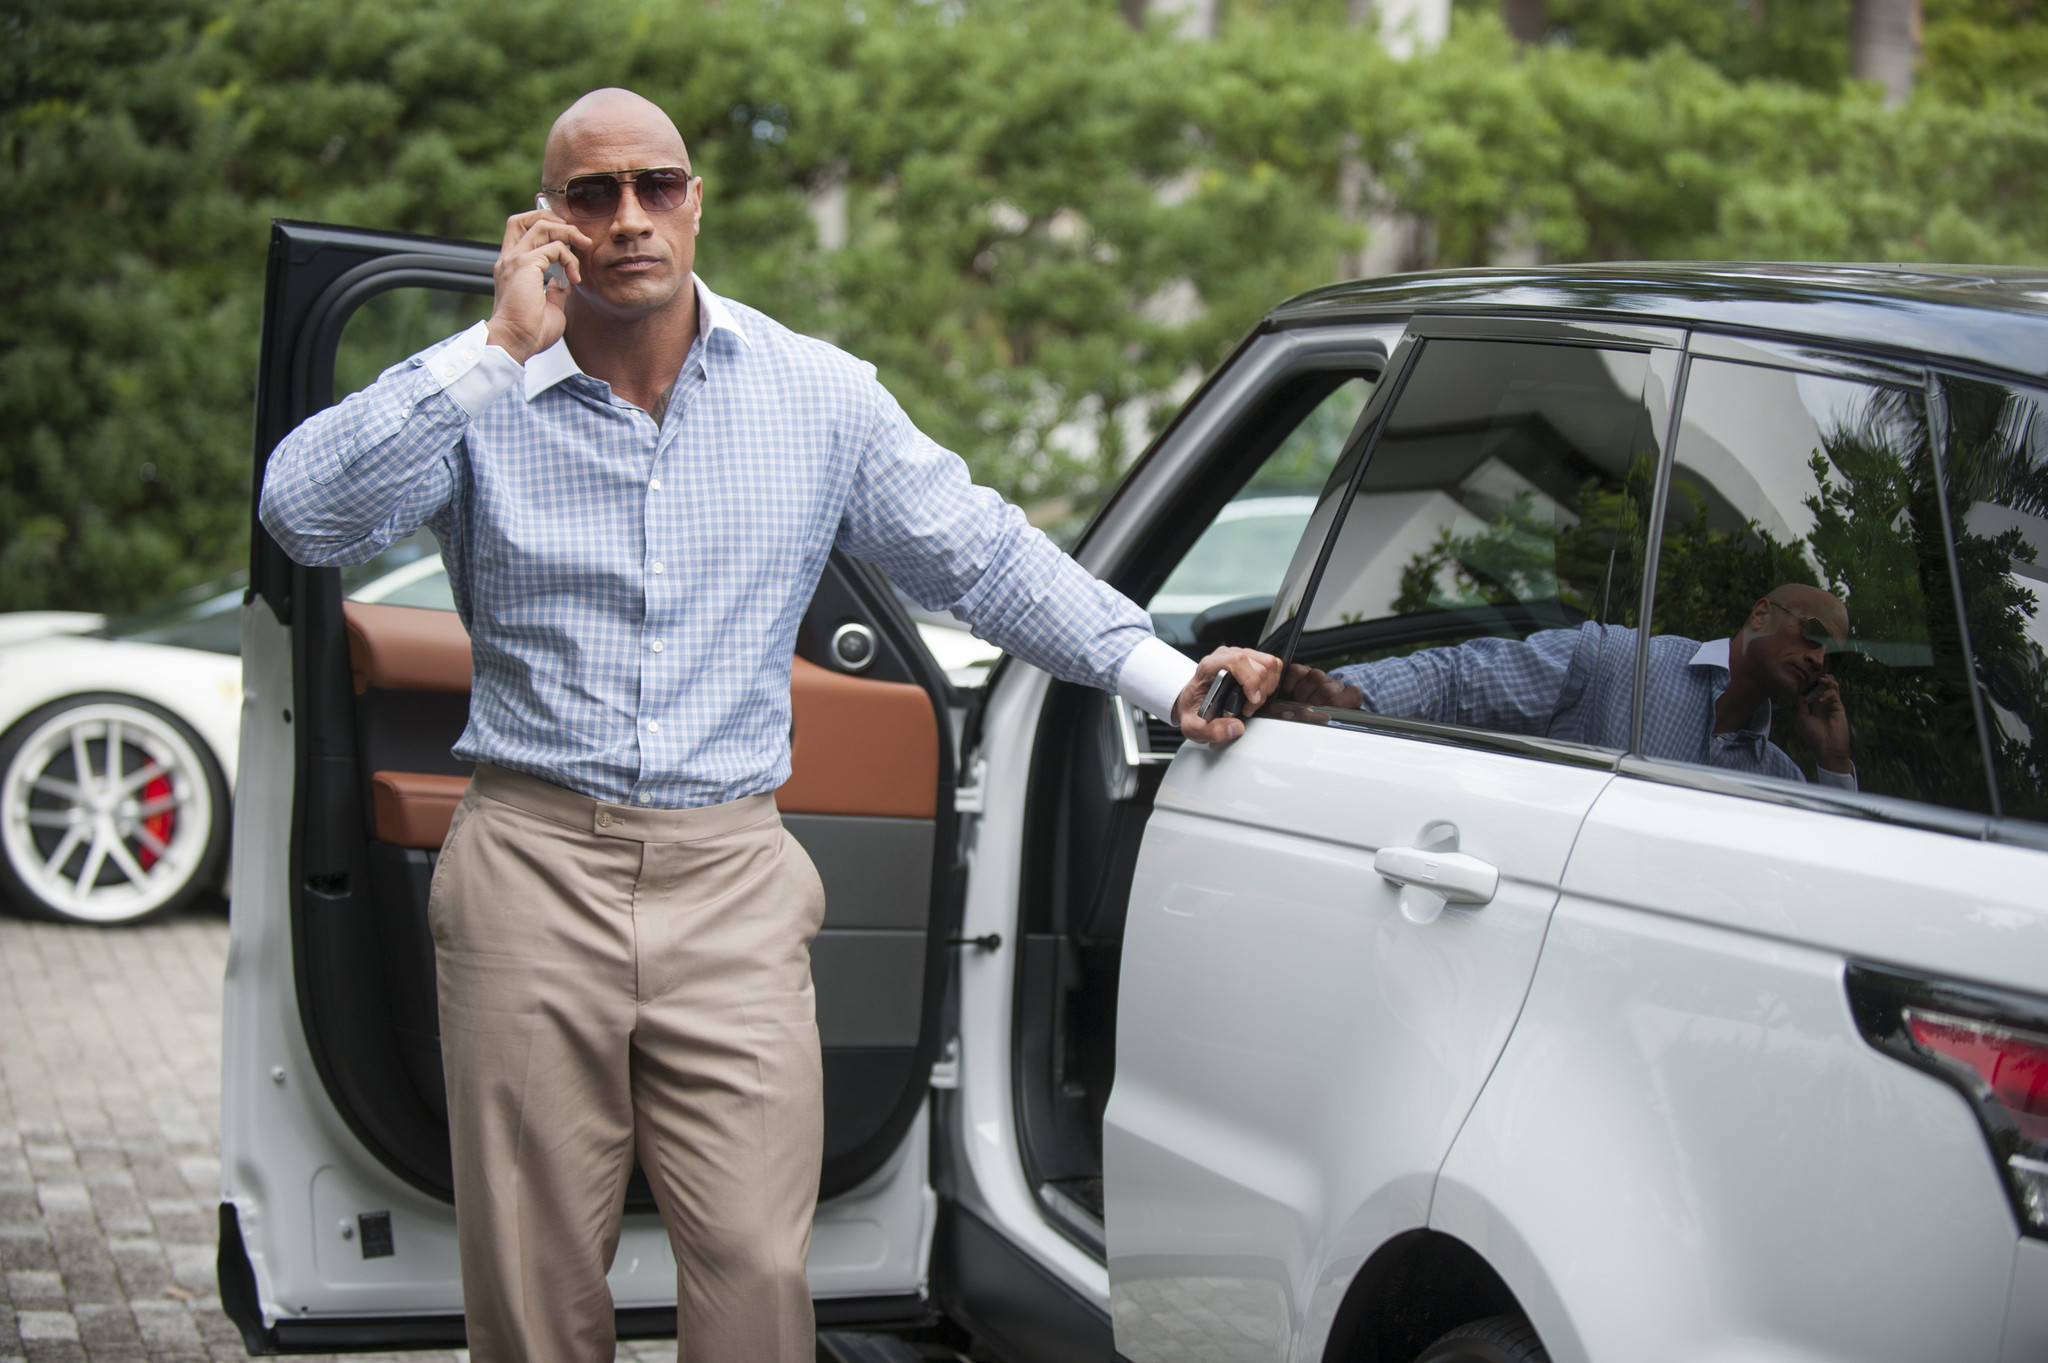 Ballers Wallpapers Tv Show Hq Ballers Pictures 4k Wallpapers 2019